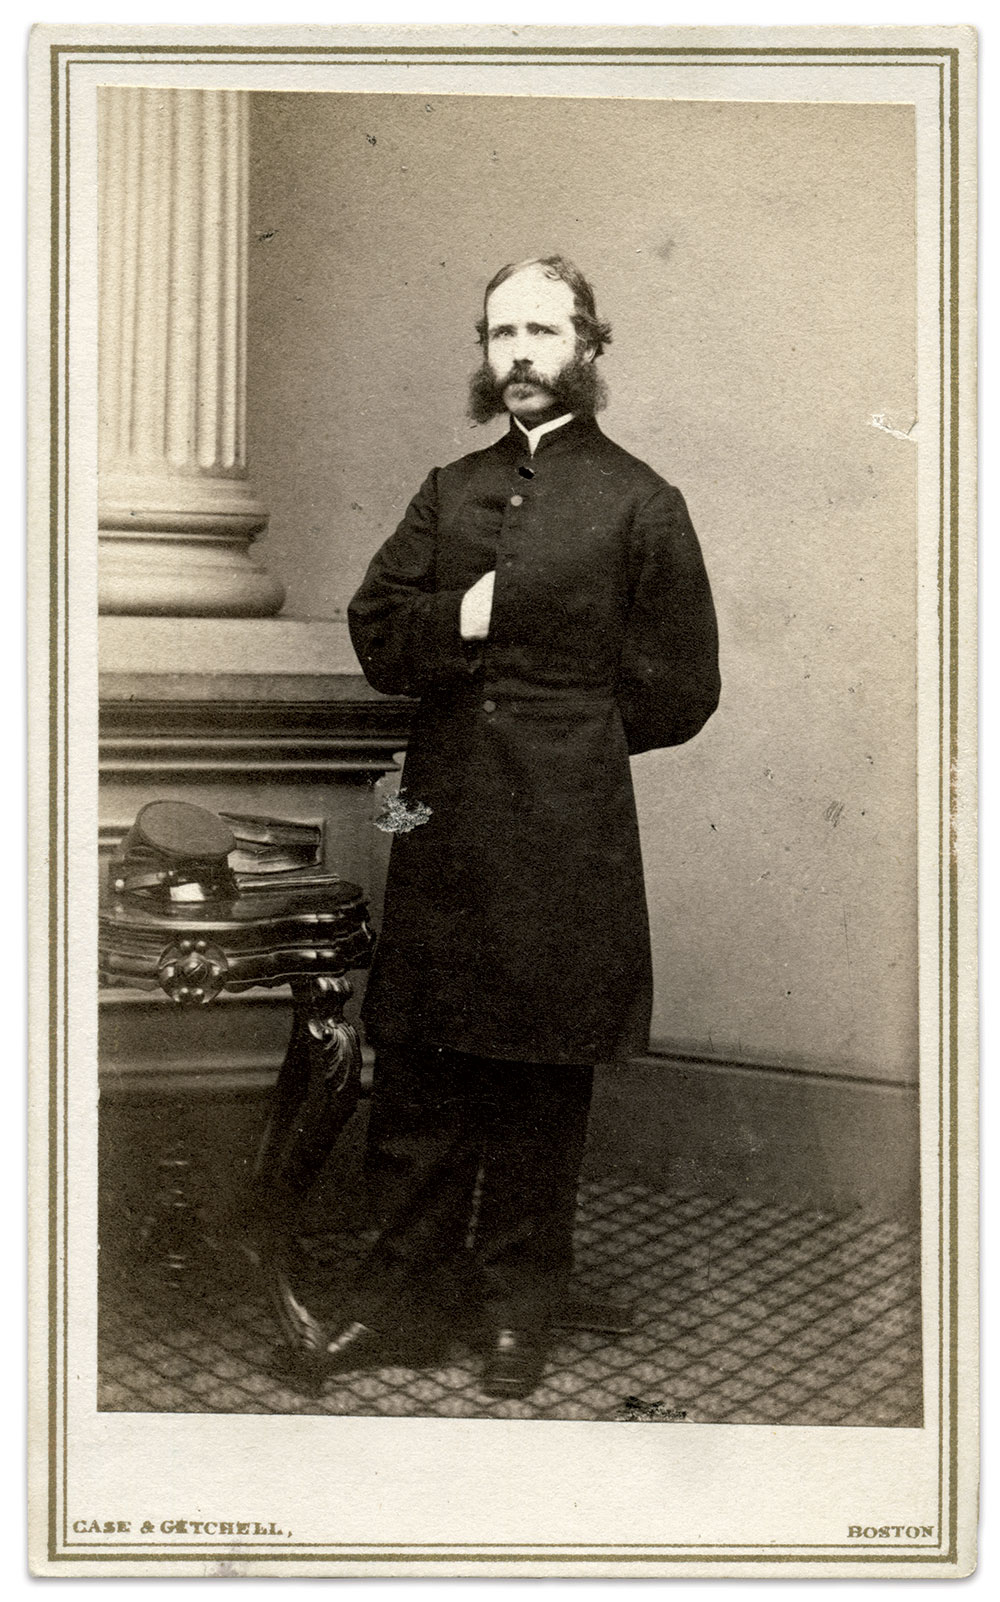 Carte de visite by Case & Getchell of Boston, Mass. Rick Carlile Collection.